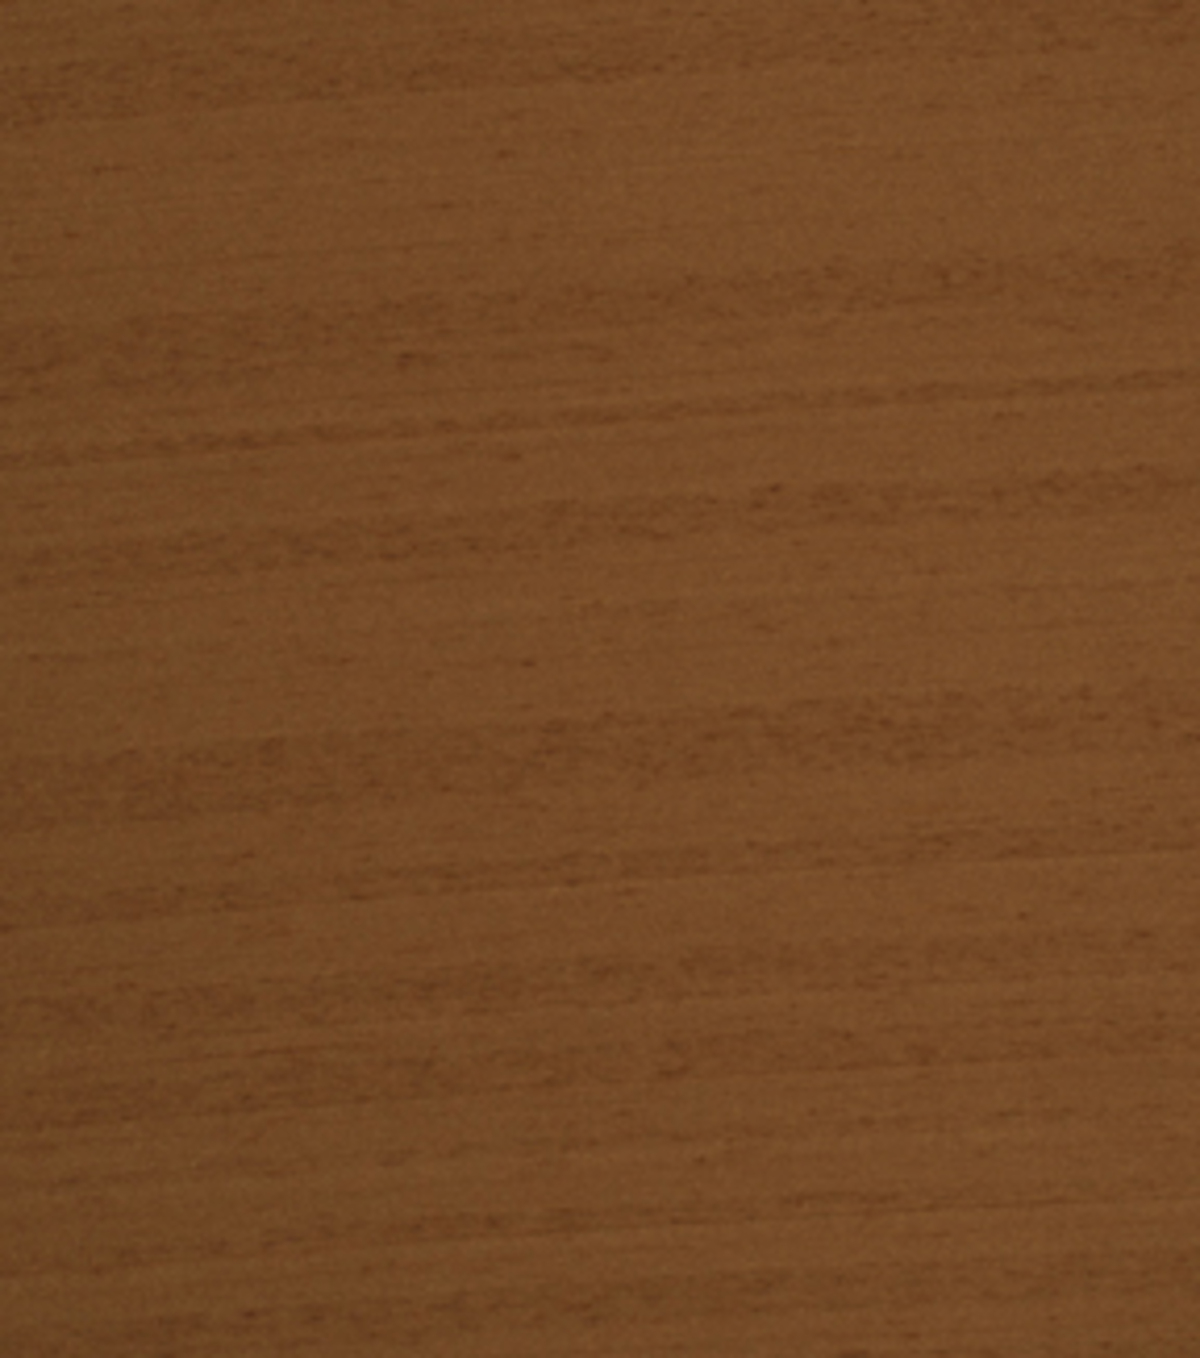 Home Decor 8\u0022x8\u0022 Fabric Swatch-Signature Series Bravo Nutmeg